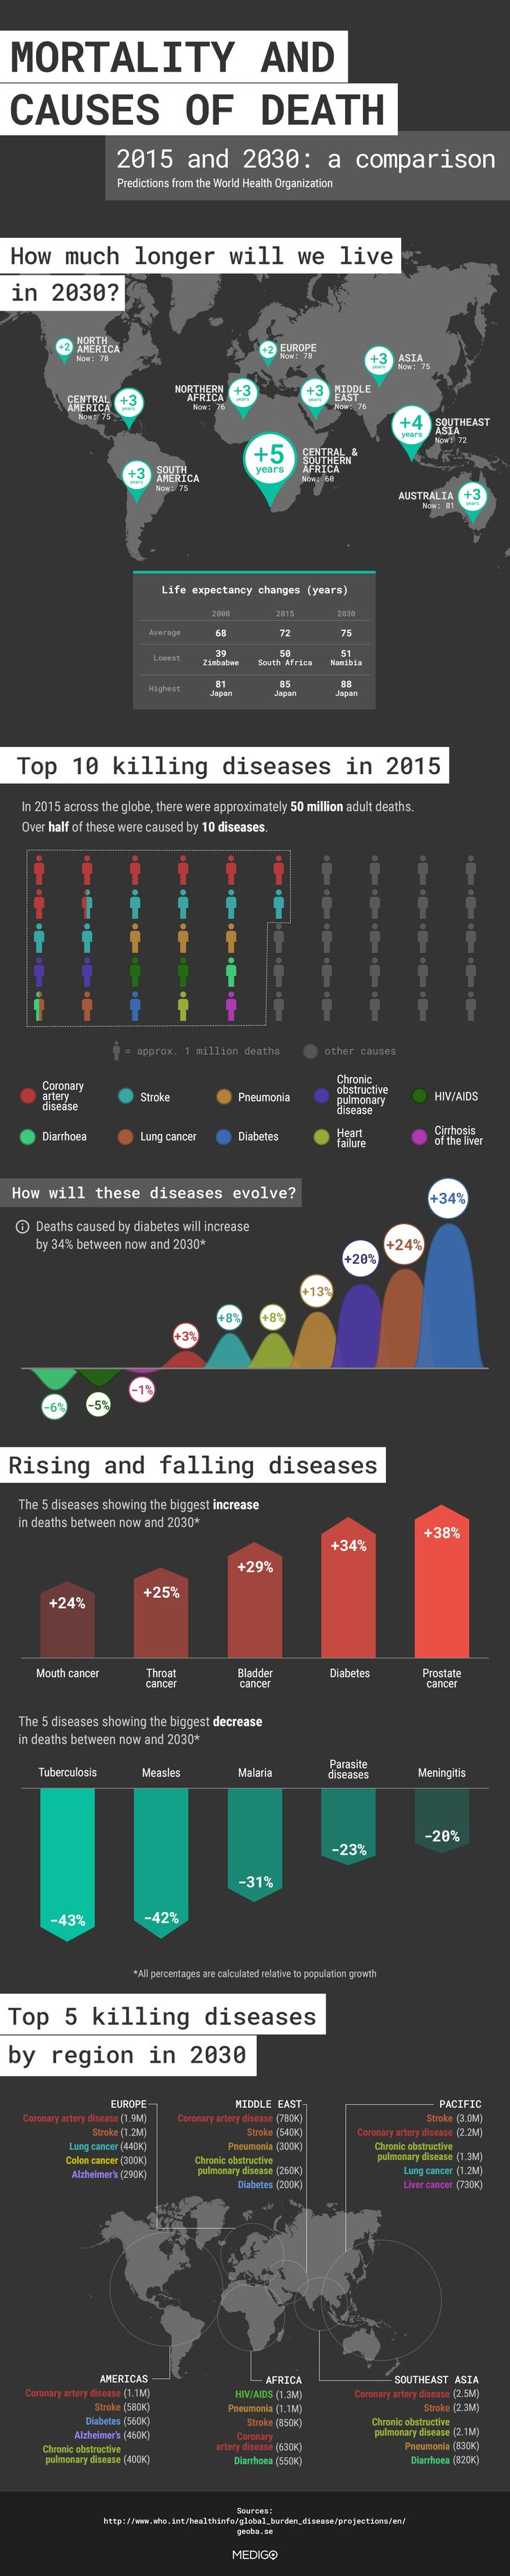 """Mortality And Causes Of Death (Infographic)  The World Health Organization released a report titled """"Projections of Mortality and Causes of Death, 2015 and 2030"""" which summarized the deaths last year as well as makes predictions for 2030."""